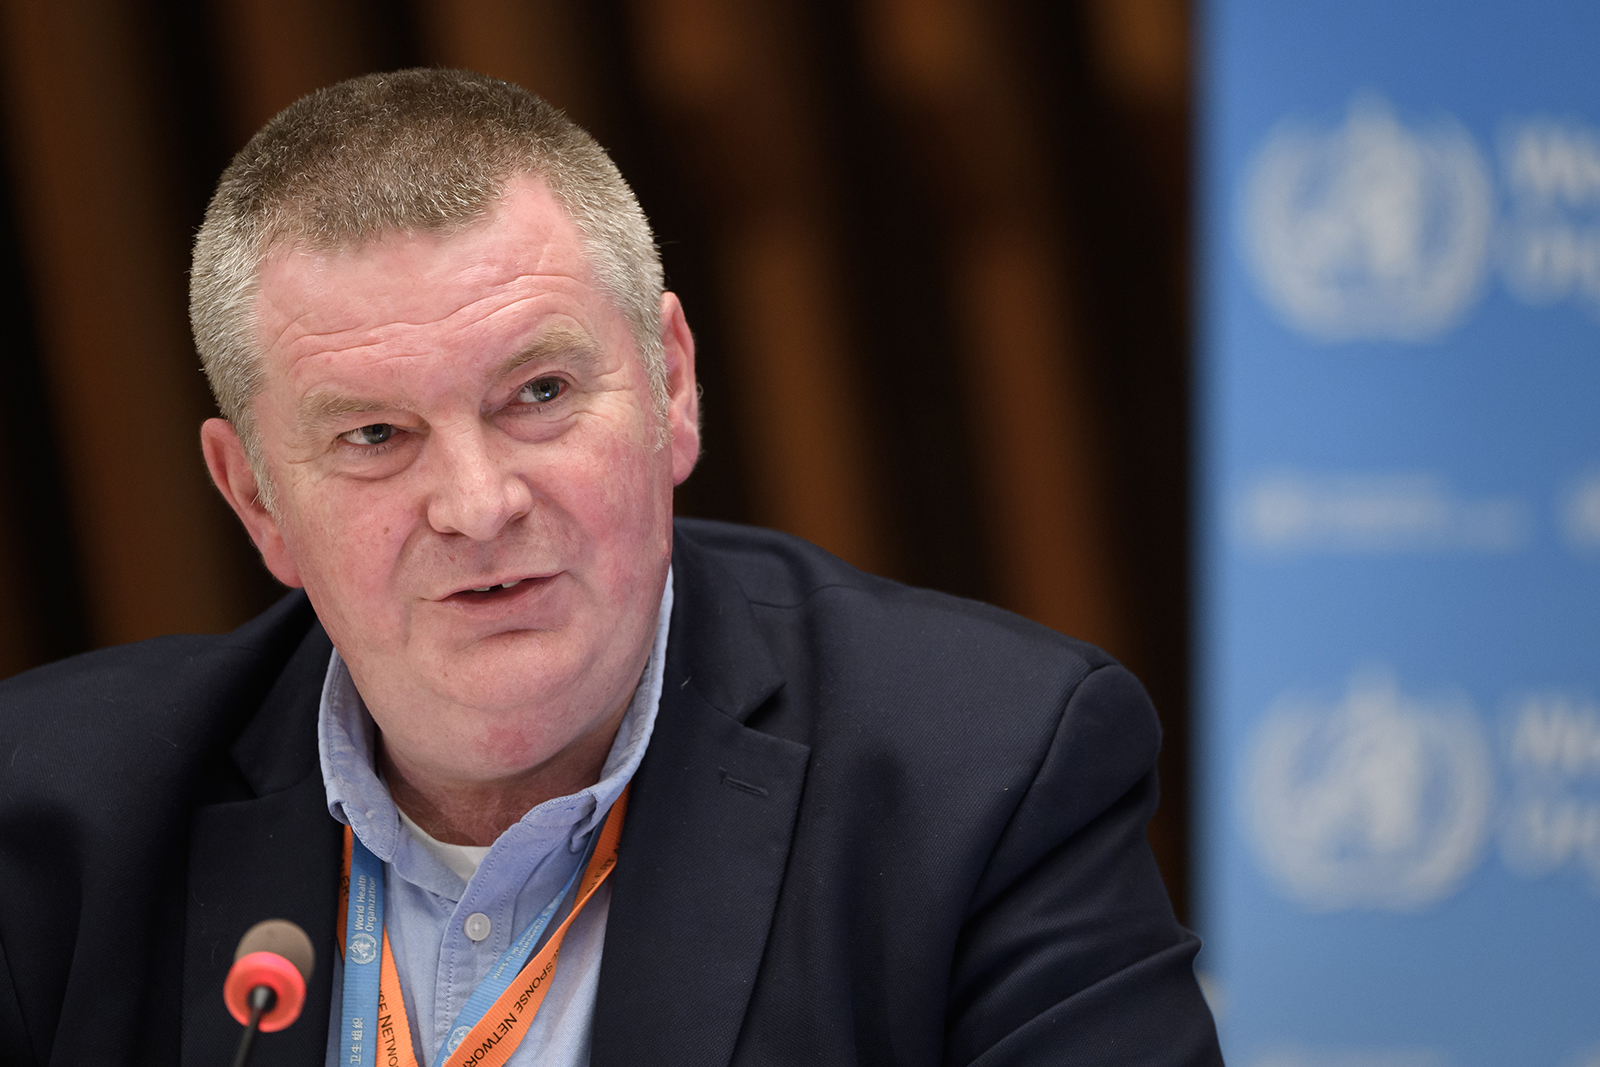 WHO Health Emergencies Programme head Michael Ryan attends a press conference at the WHO headquarters in Geneva on July 3.